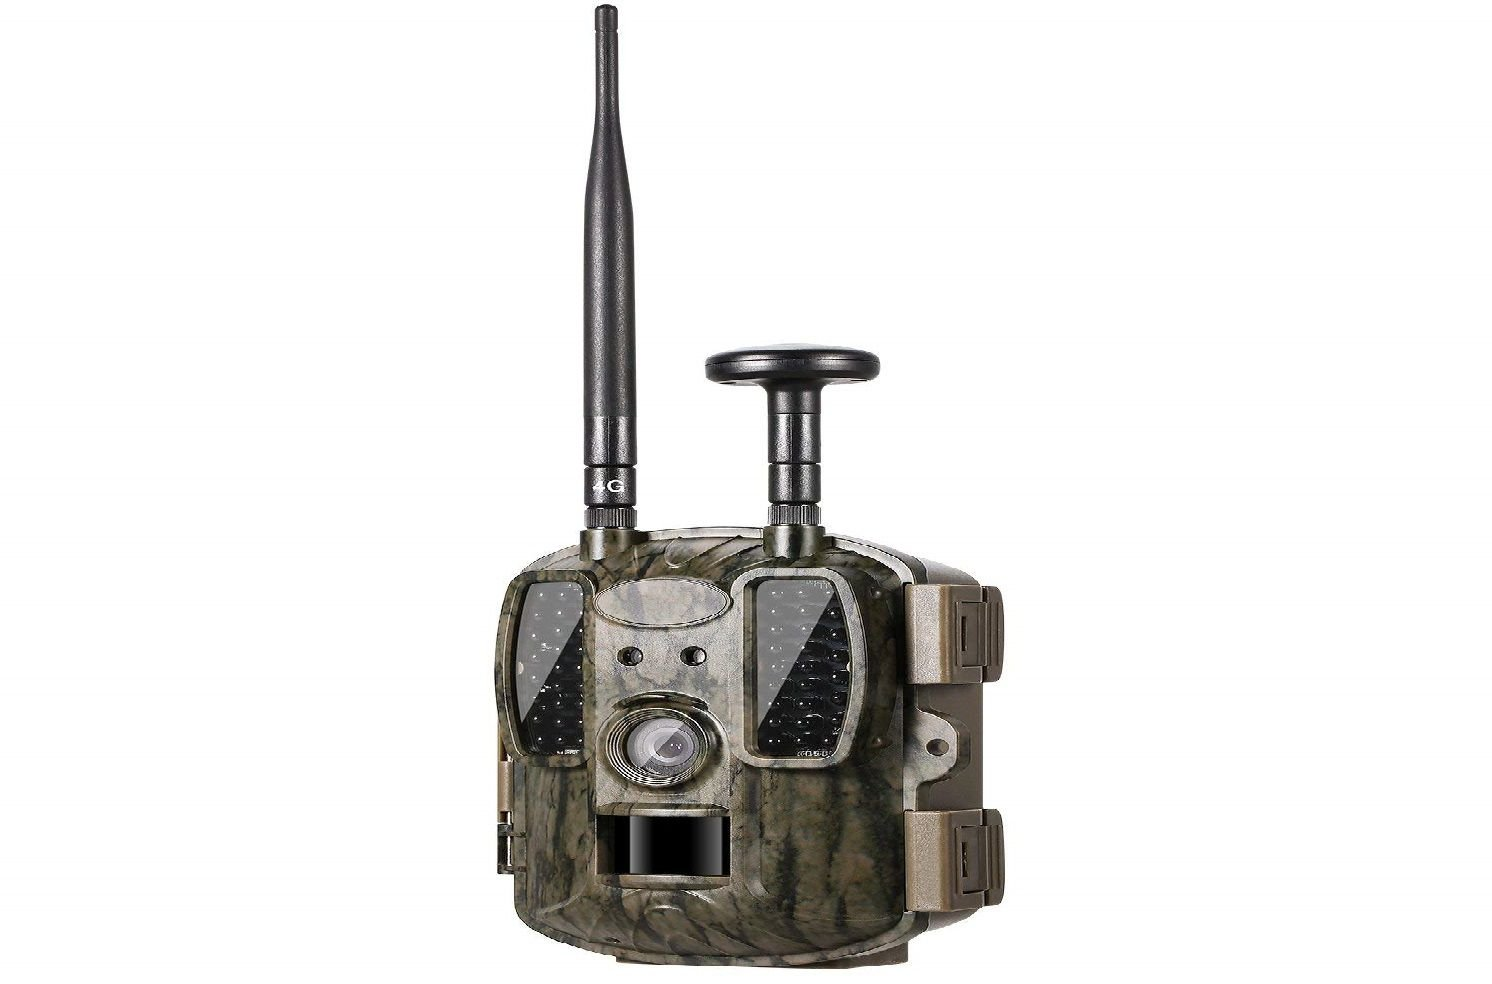 Ancheer 4G Wireless Trail Game Camera Review